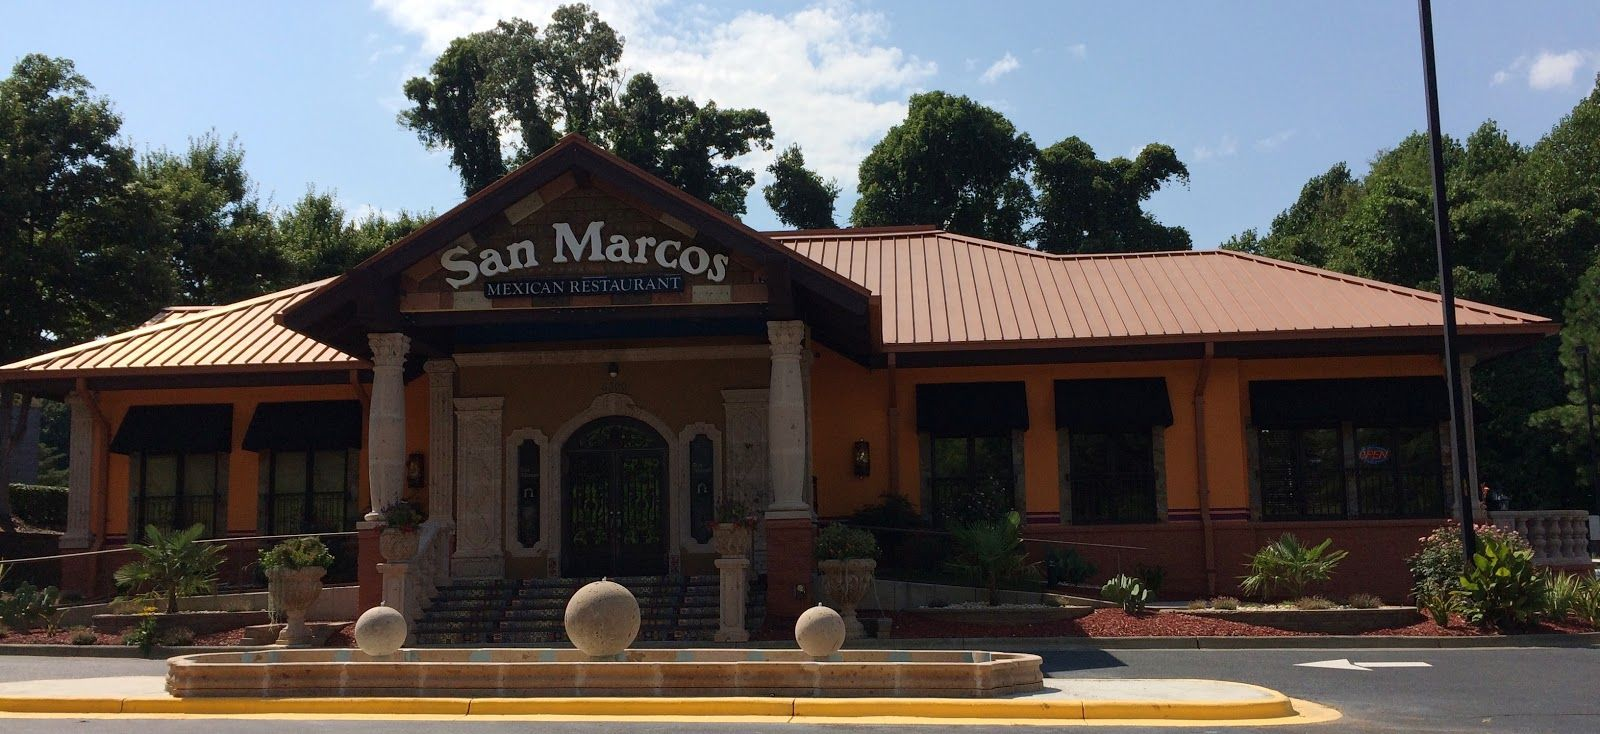 San Marcos Mexican Restaurant Review Raleigh Nc Mexican Restaurant Restaurant Review Restaurant